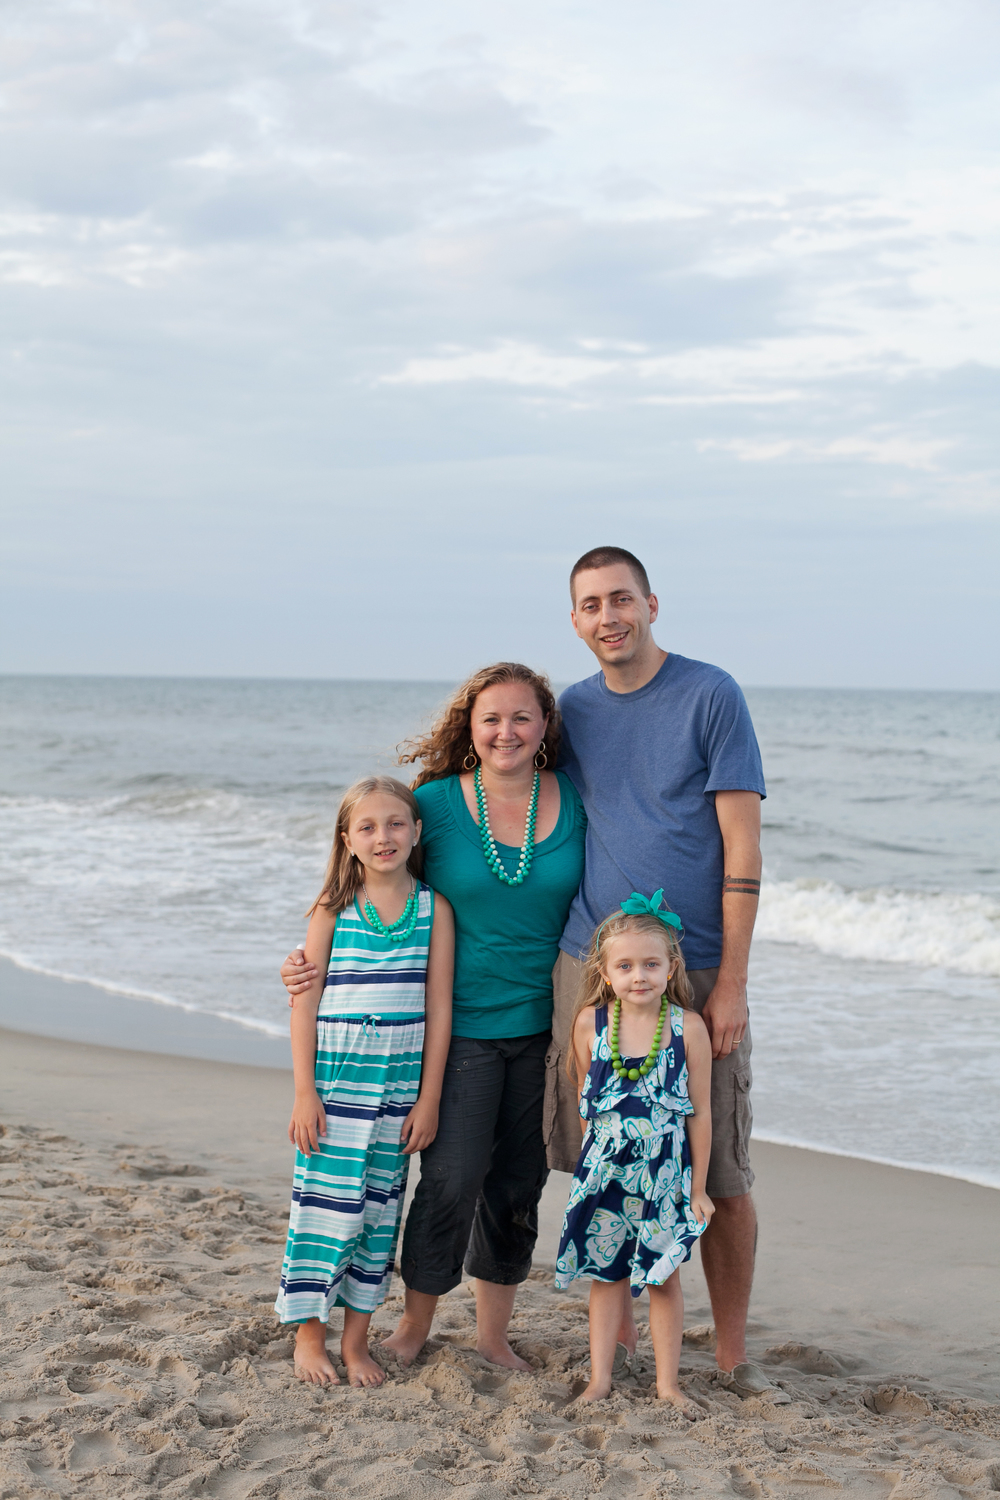 Our family on the shores of Corolla, NC in 2013